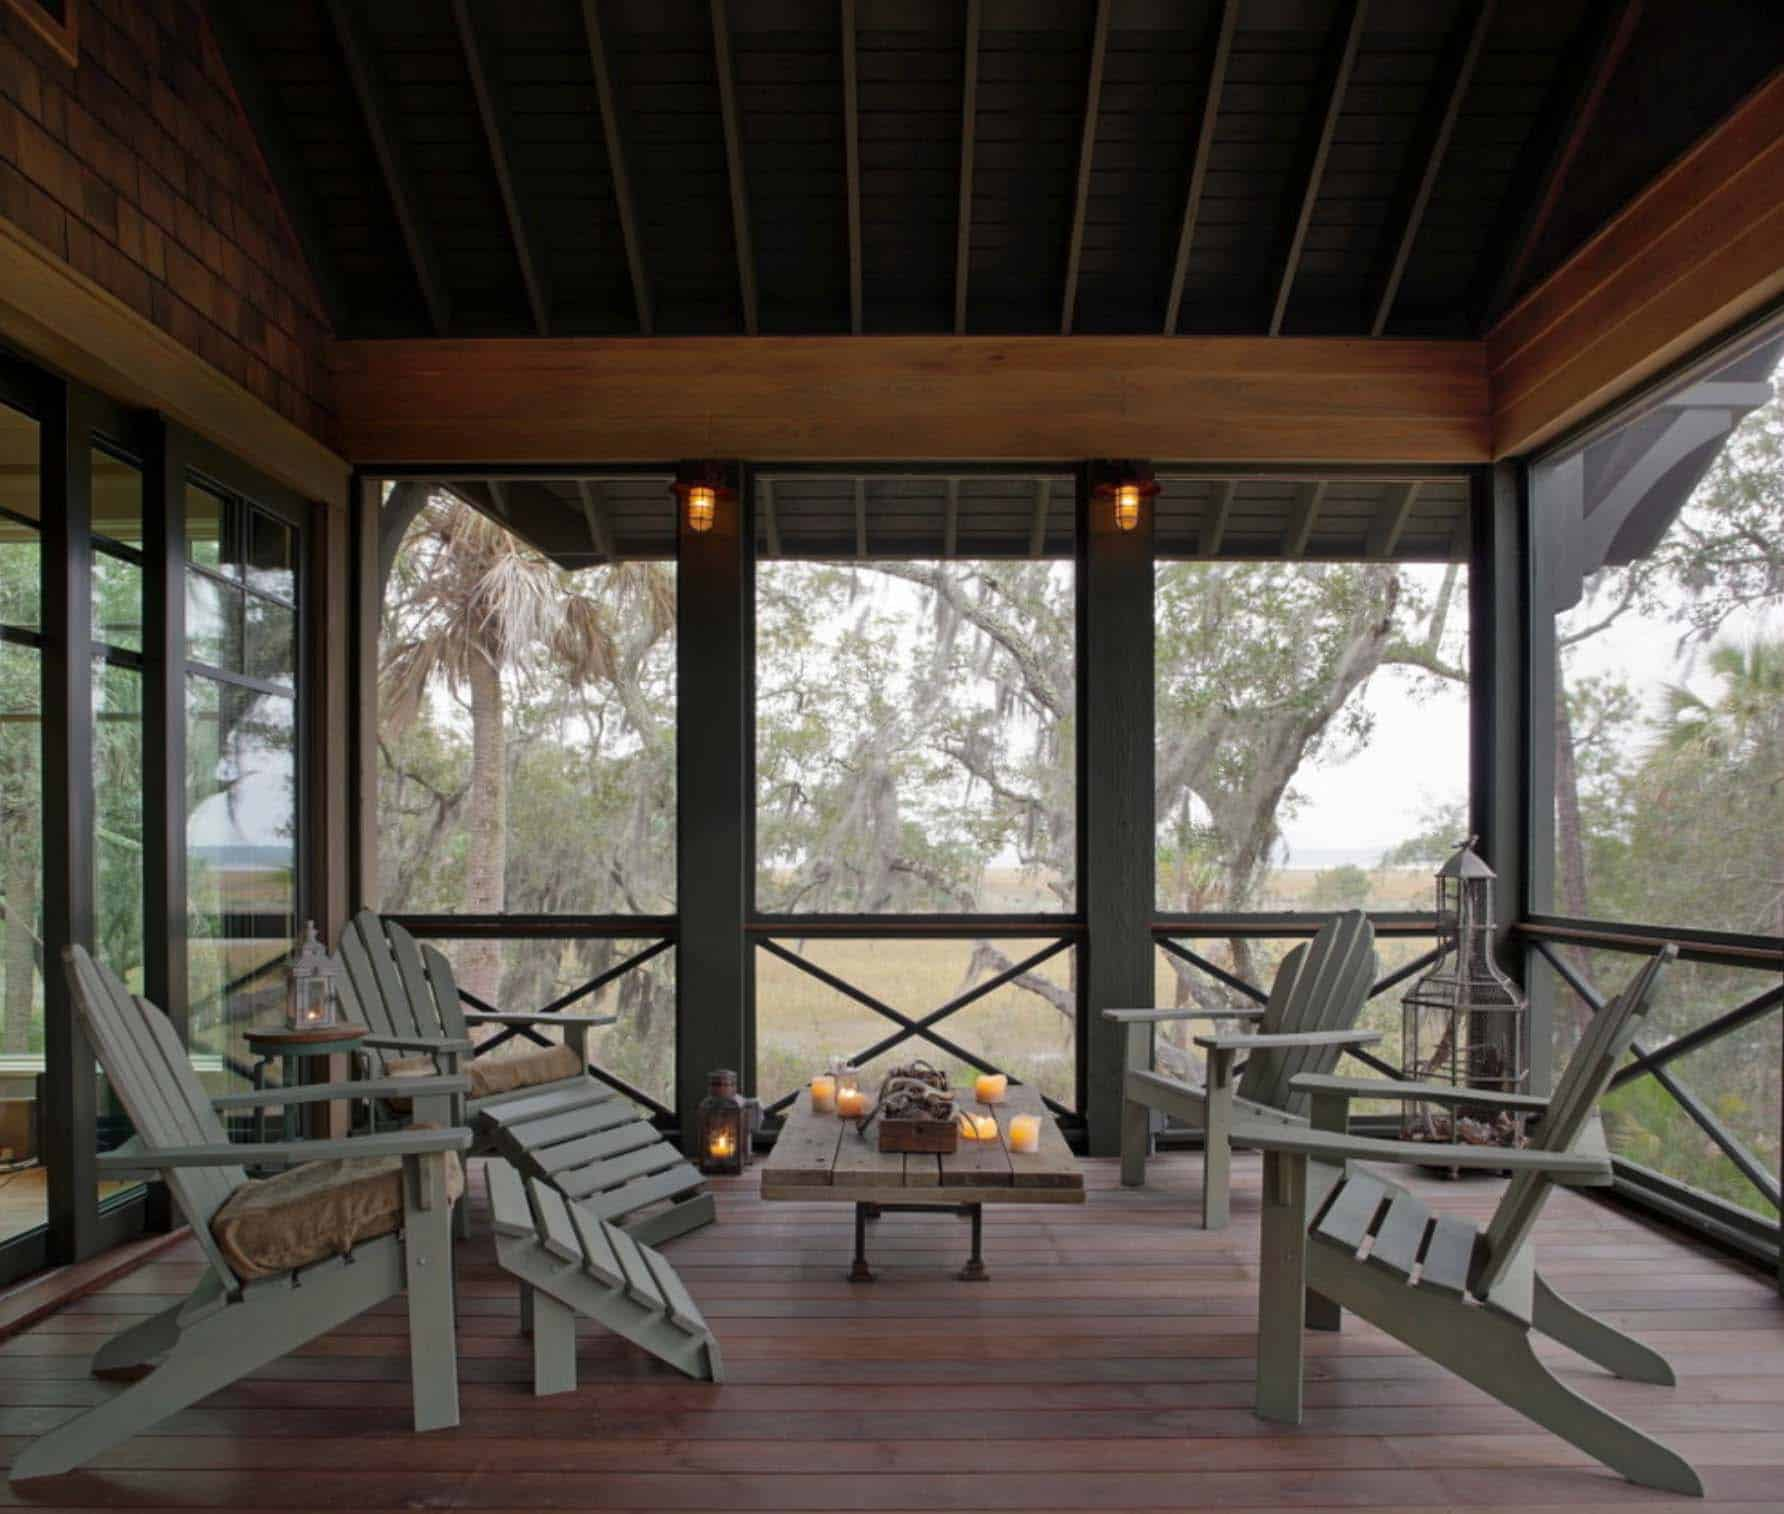 Screened Porch Design Ideas-10-1 Kindesign